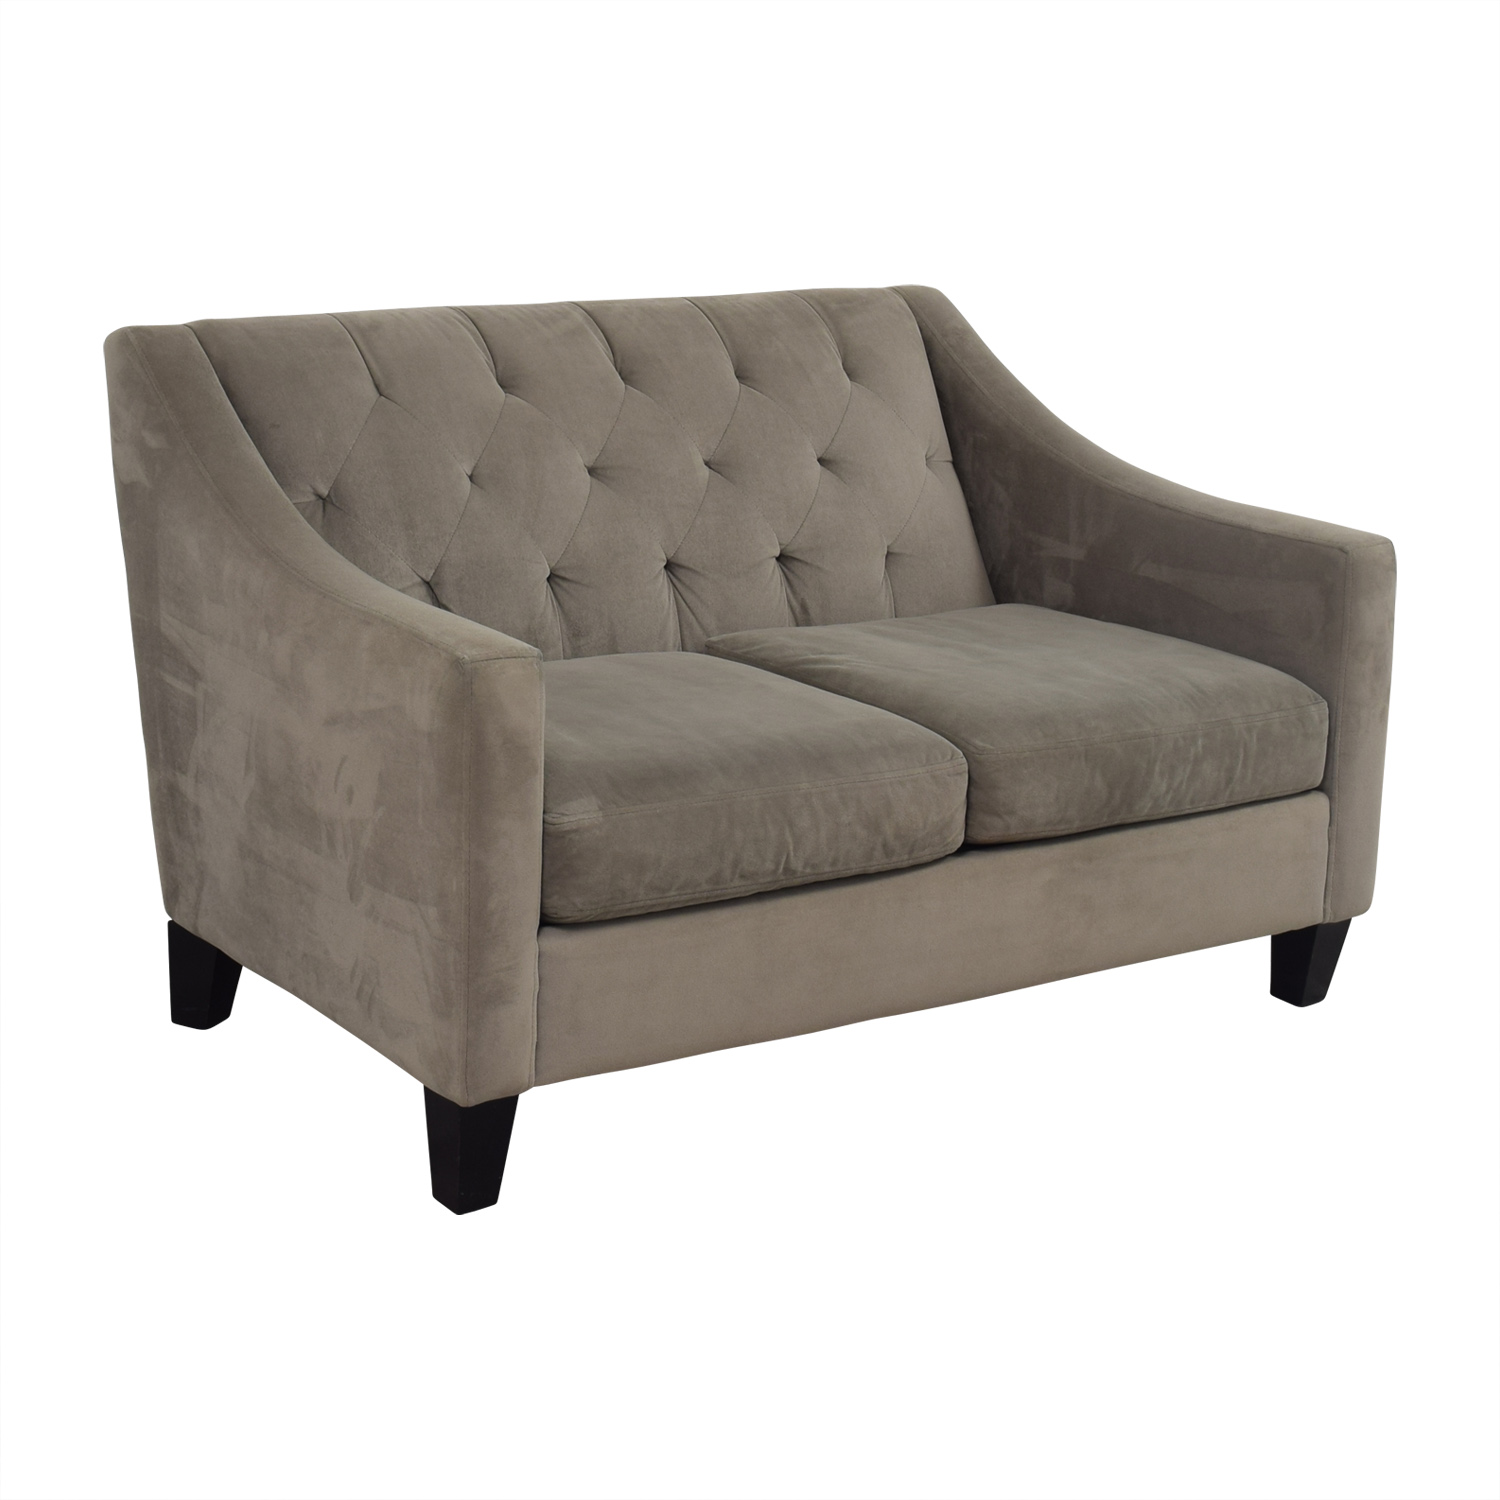 90 off better by design better by design grey tufted for Better by design couch